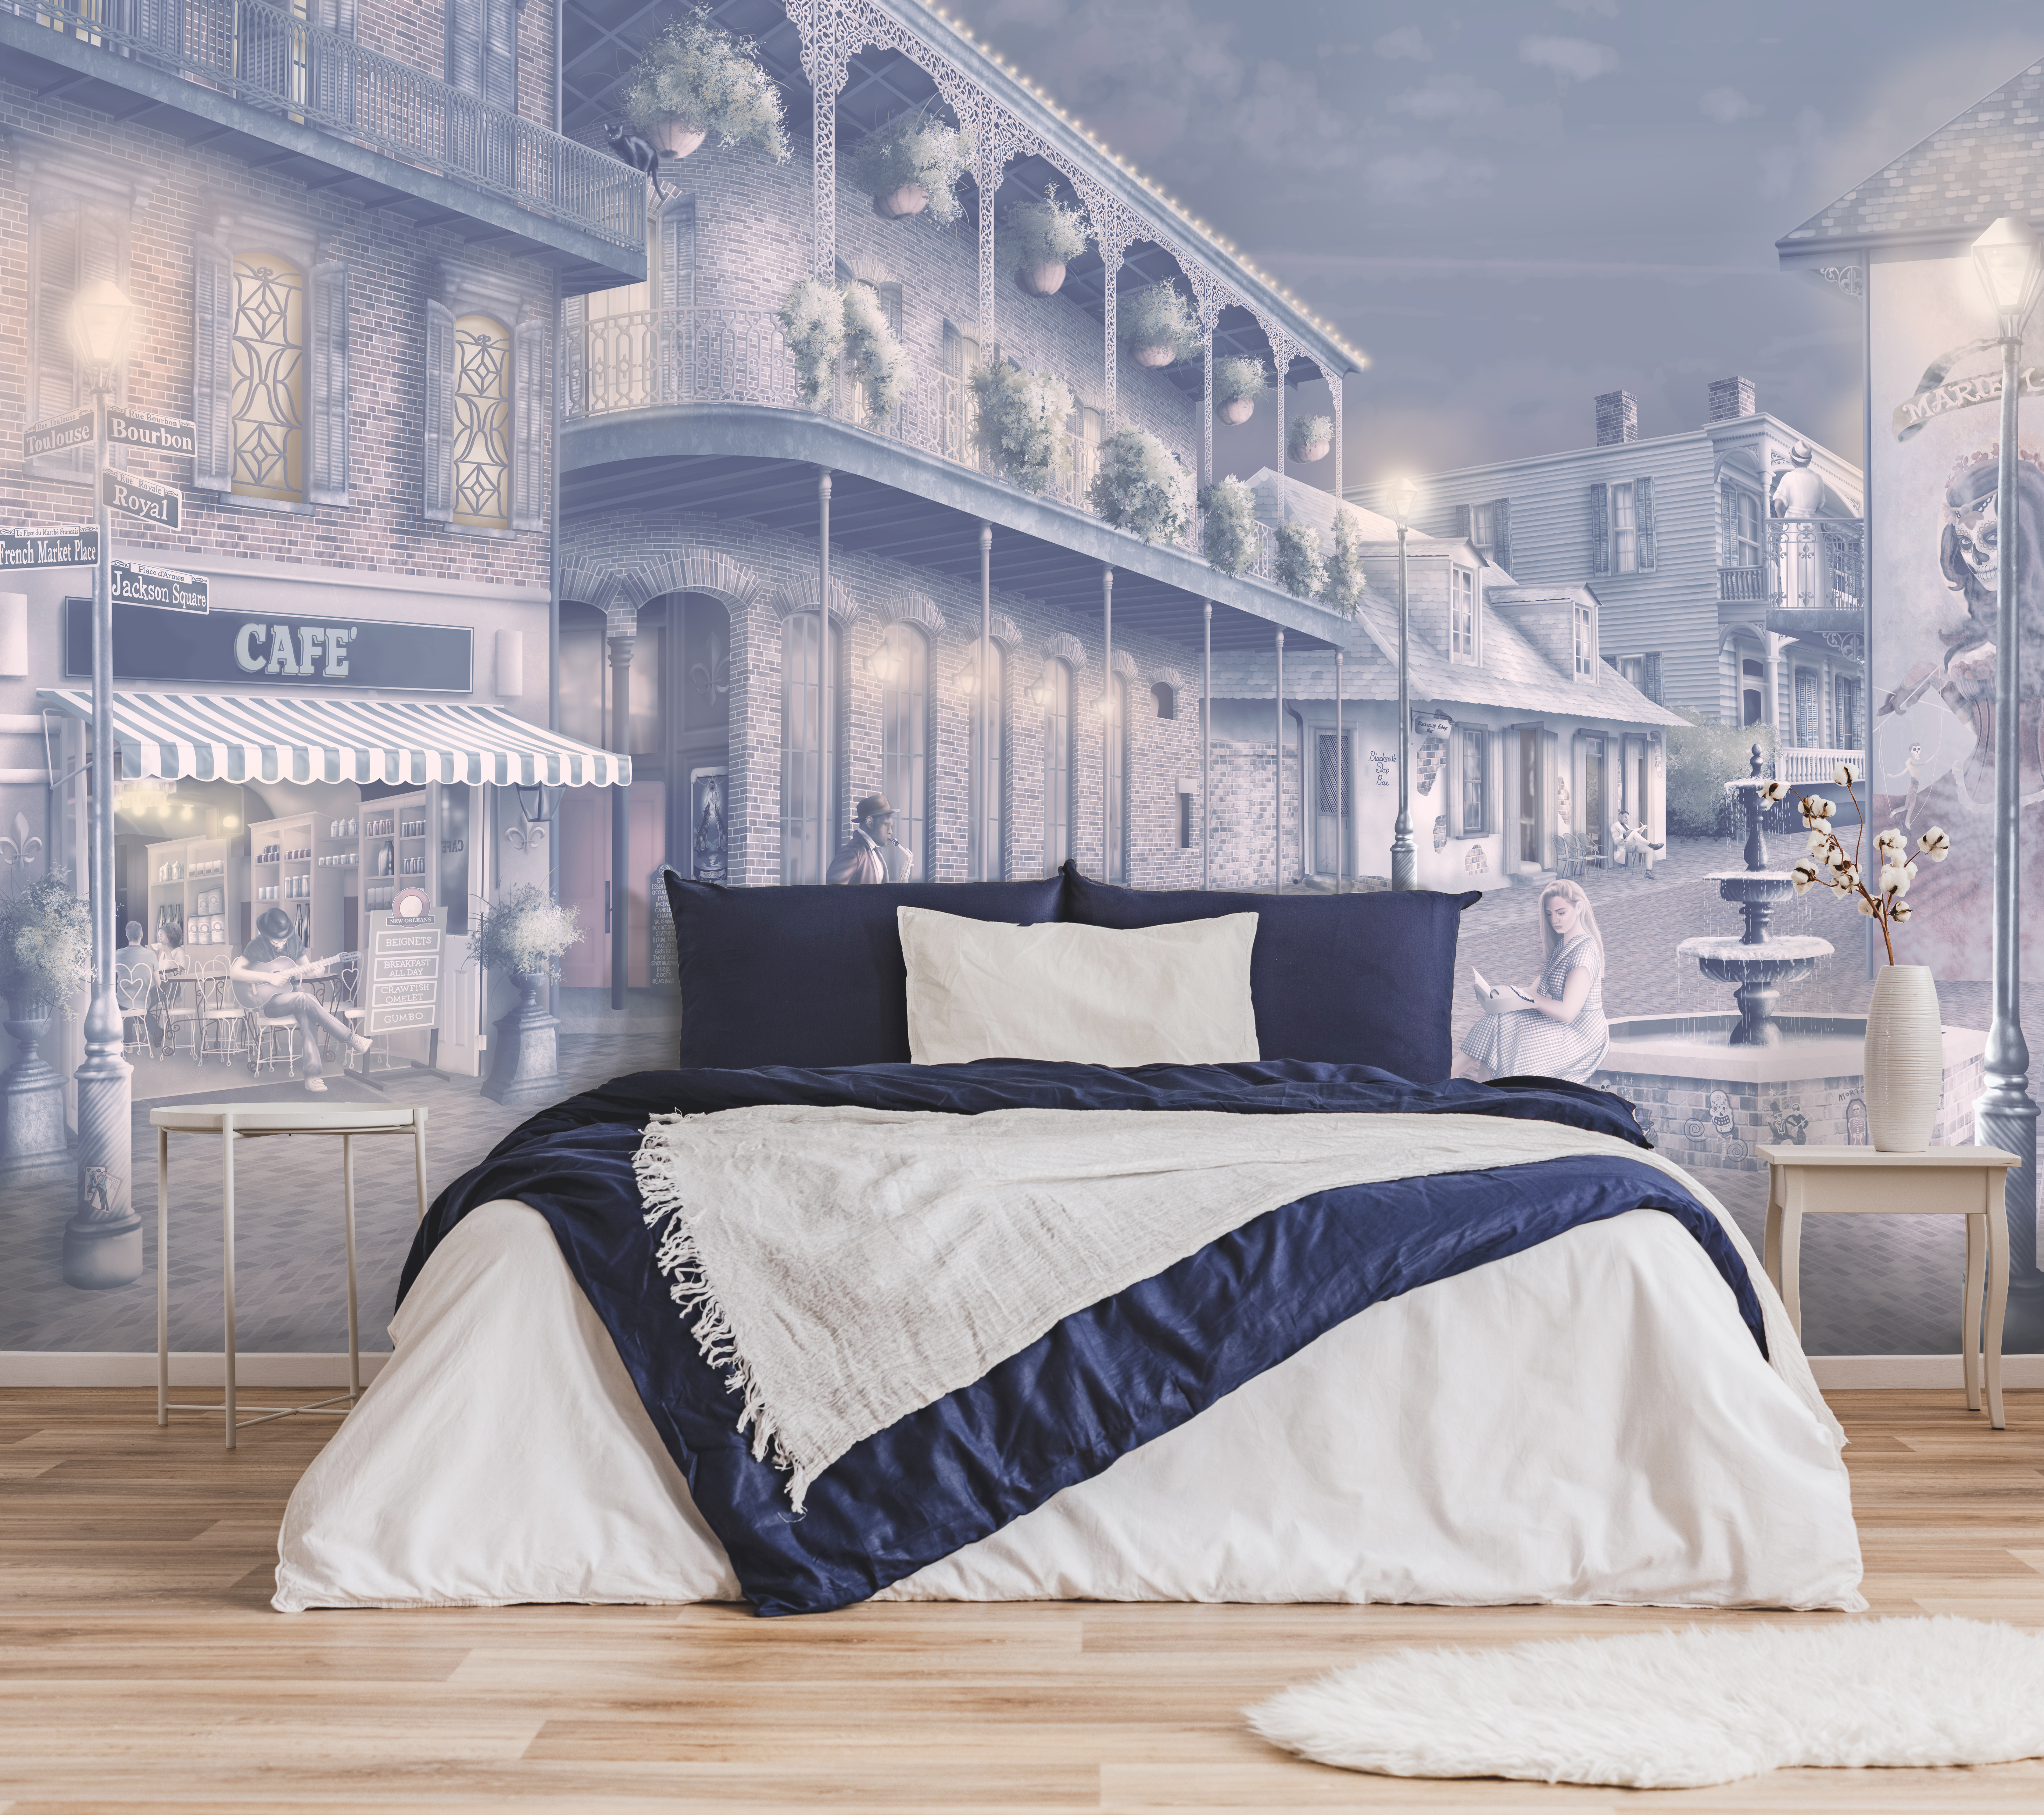 Wallpaper in warm navy-blue, cream, beige, purple, pink.  A romantic Wallpaper design set in the streets of New Orleans at night withs lights. Featuring musicians, voodoo art, cafes and more.  Beige warm wood flooring, navy and white bed linen with white furniture.